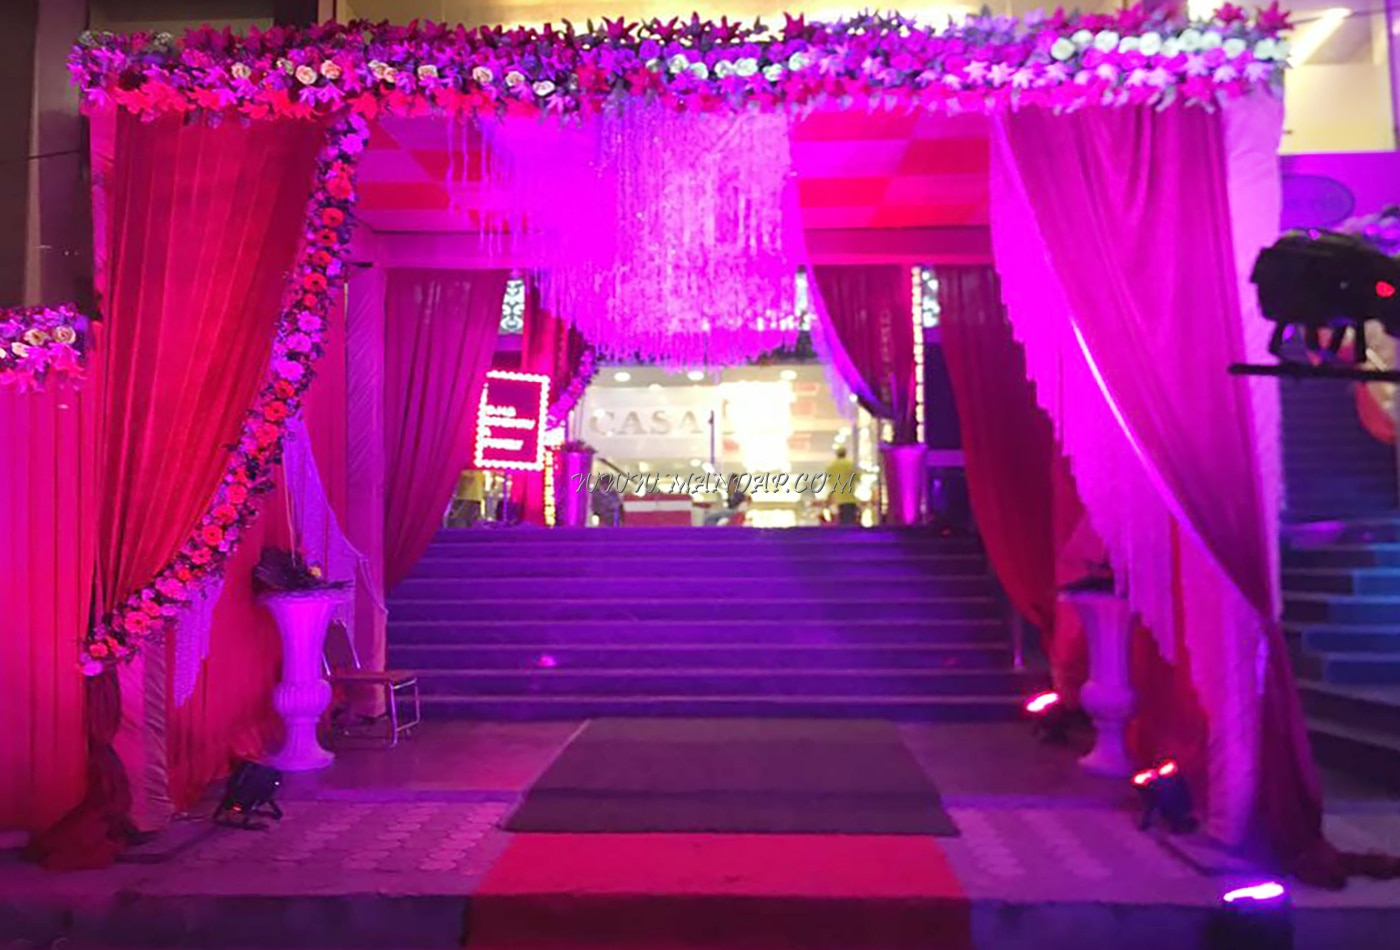 Find More Banquet Halls in Nehru Nagar